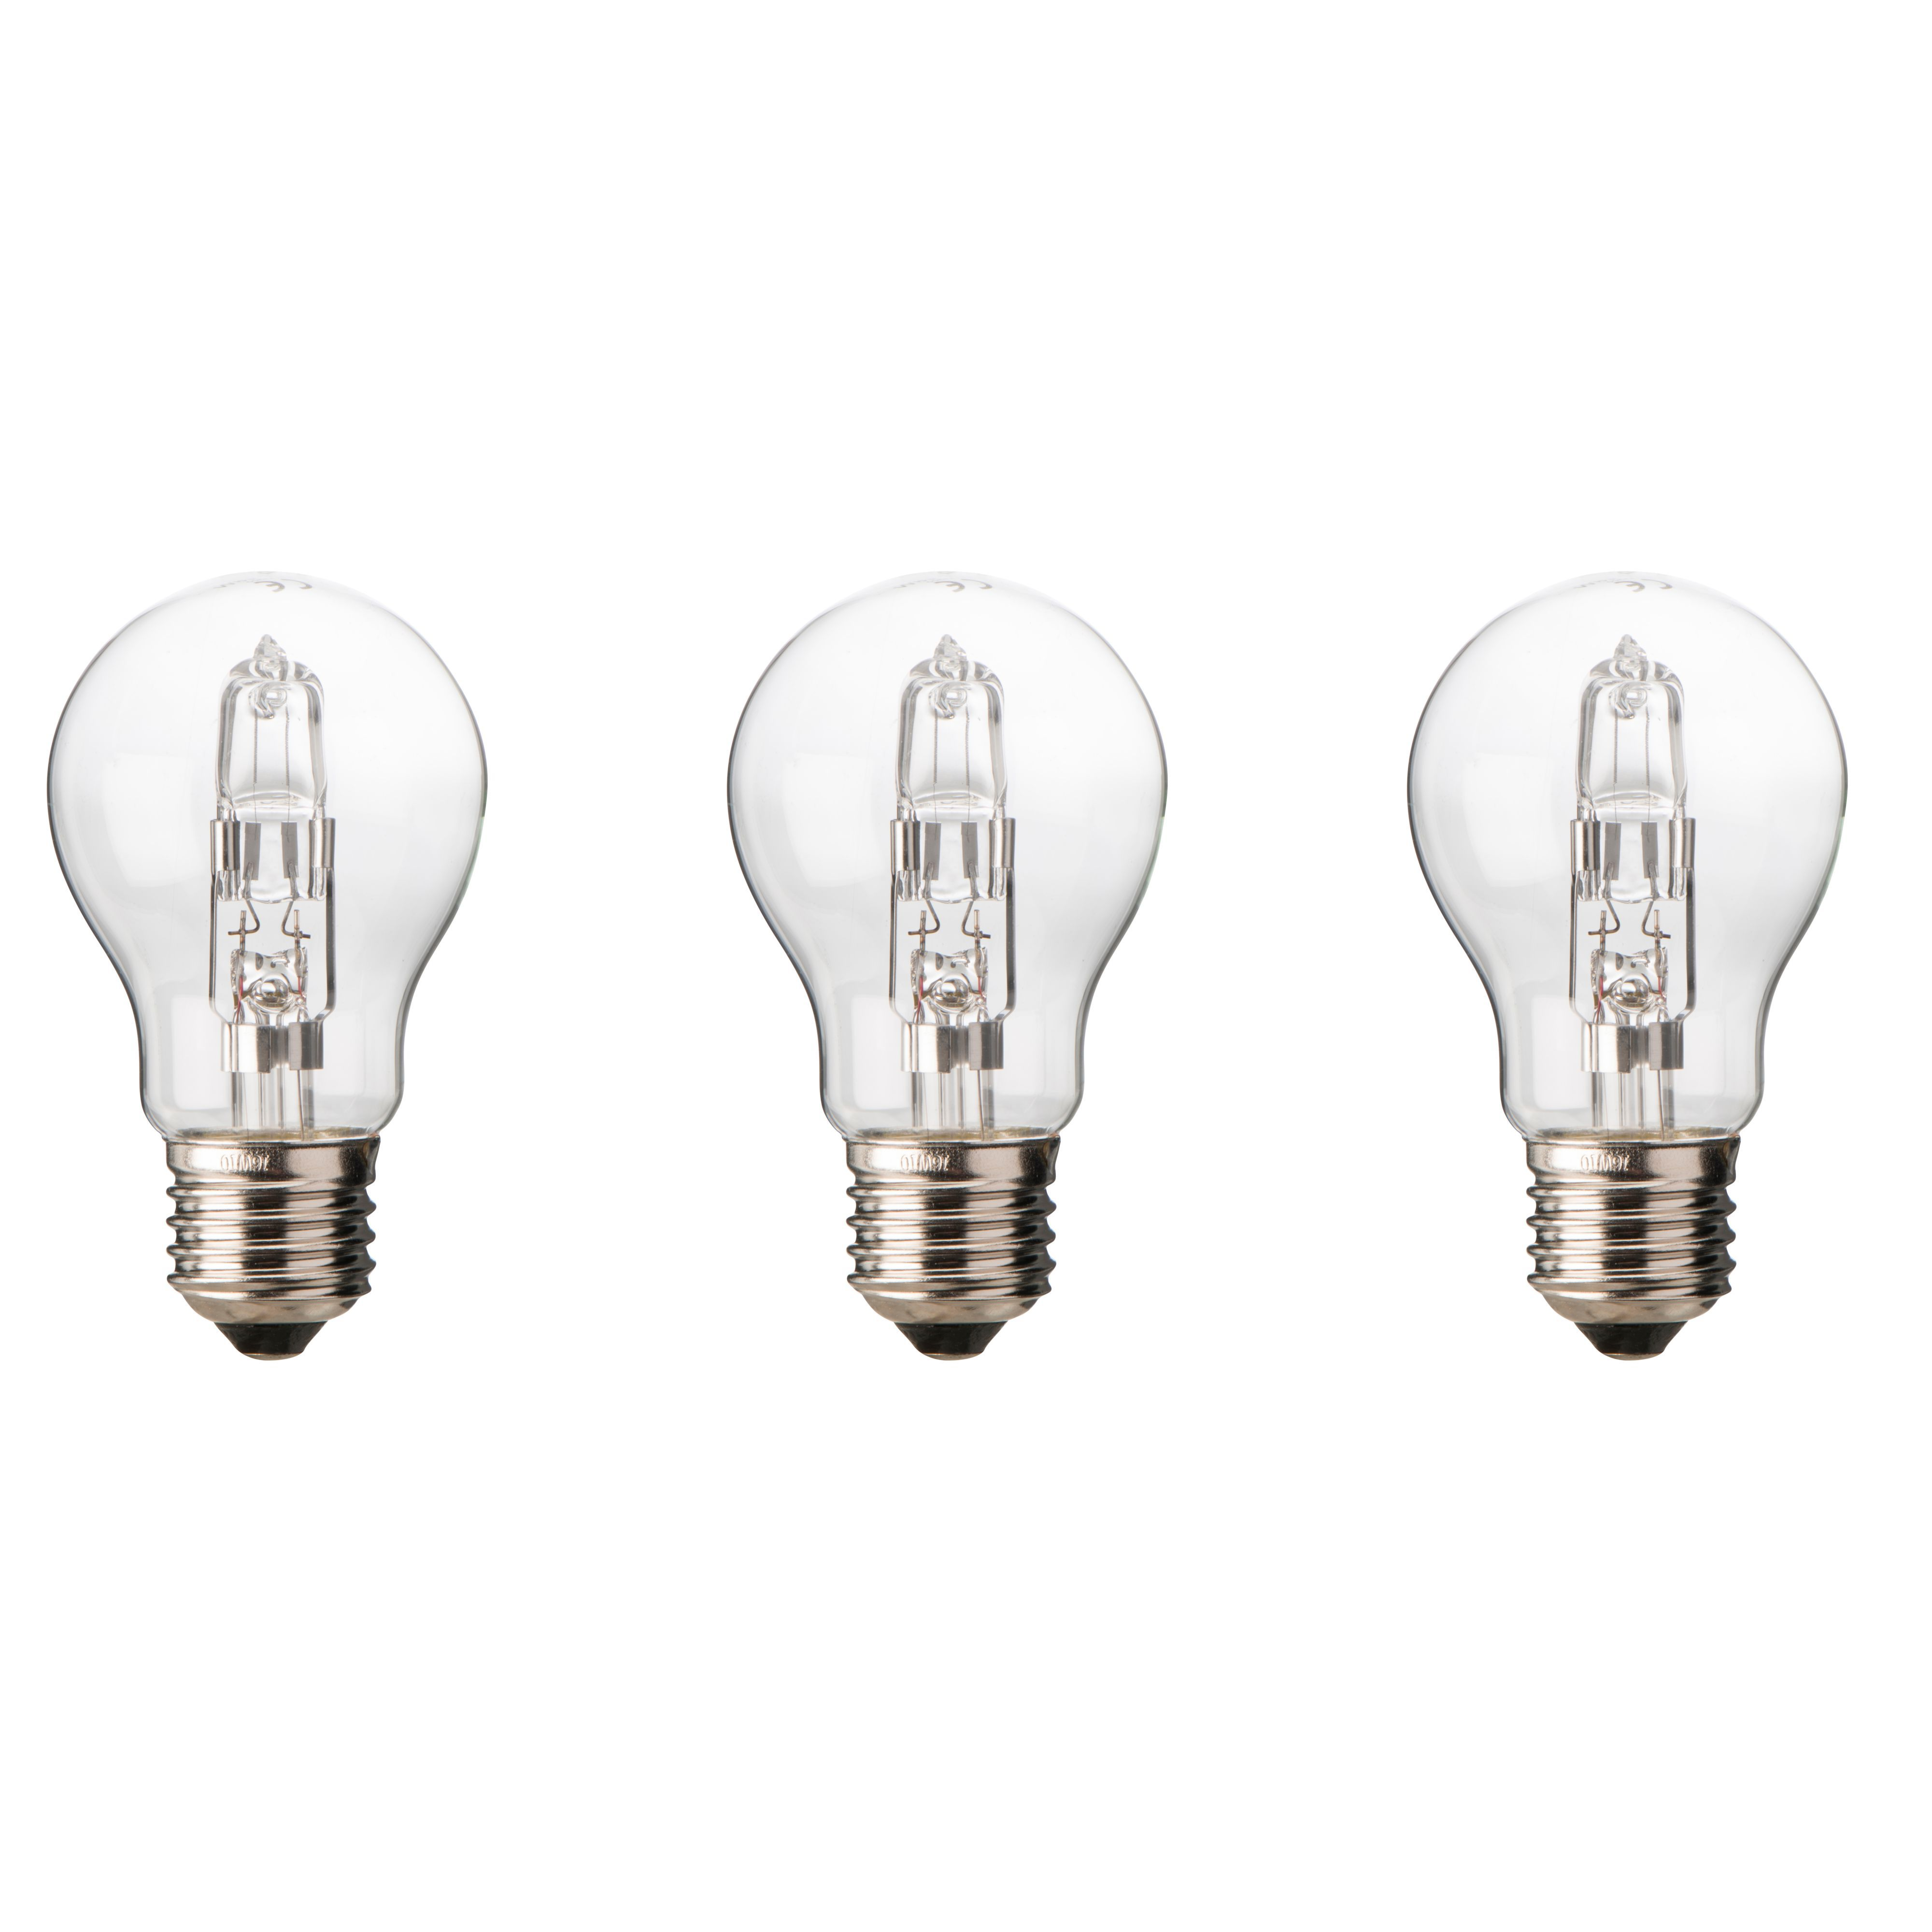 Diall E27 46w Halogen Dimmable Classic Light Bulb, Pack Of 3